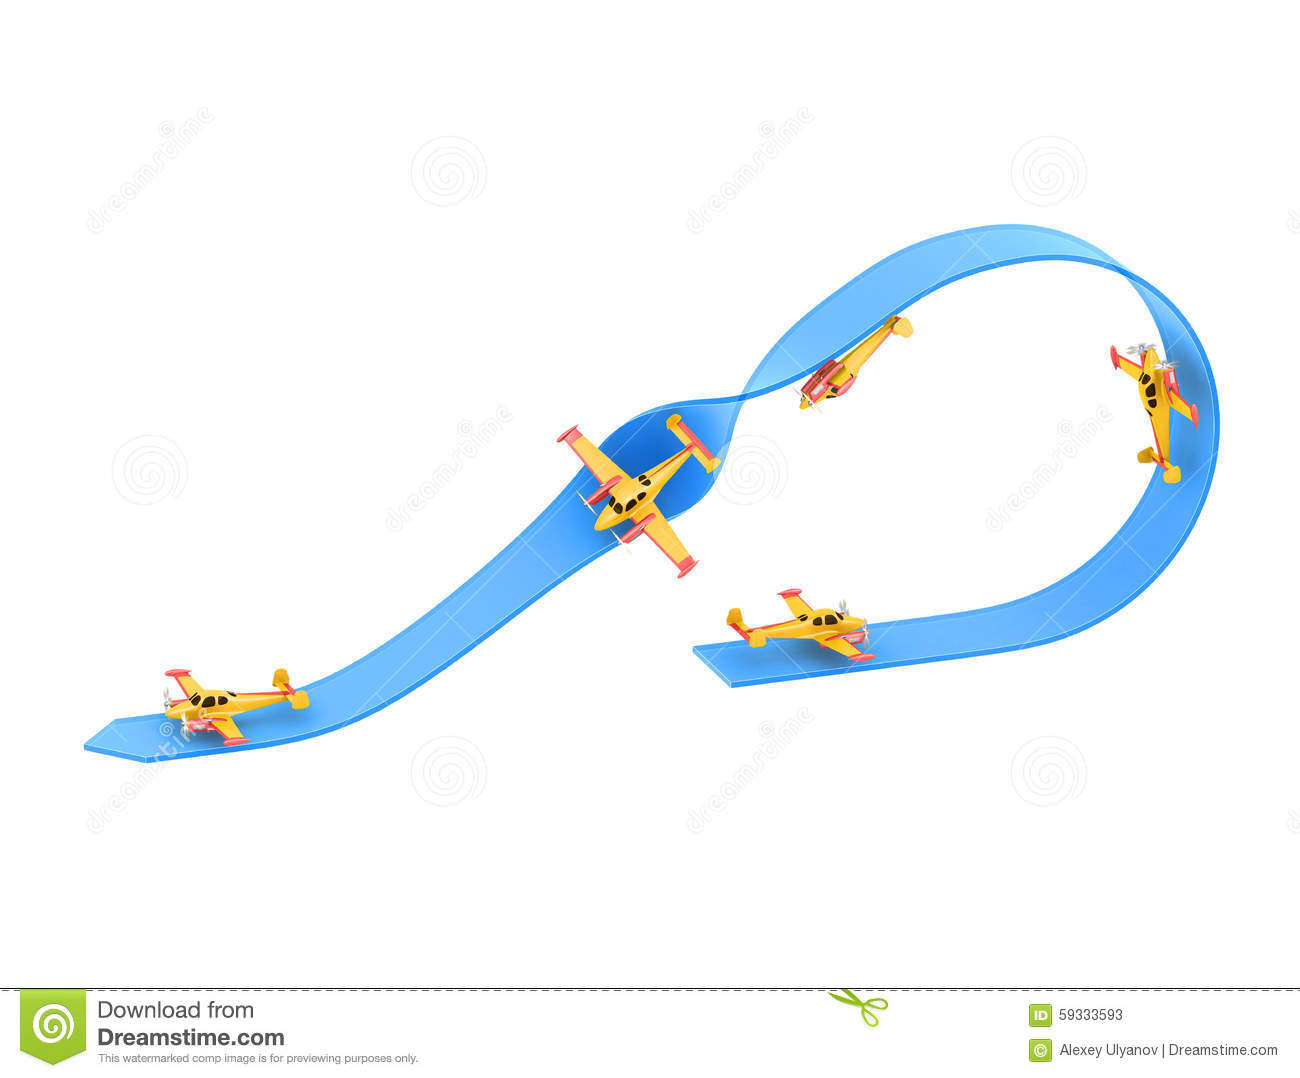 Illustration Of Aerobatics Half Loop With A Half Roll With Yellow.